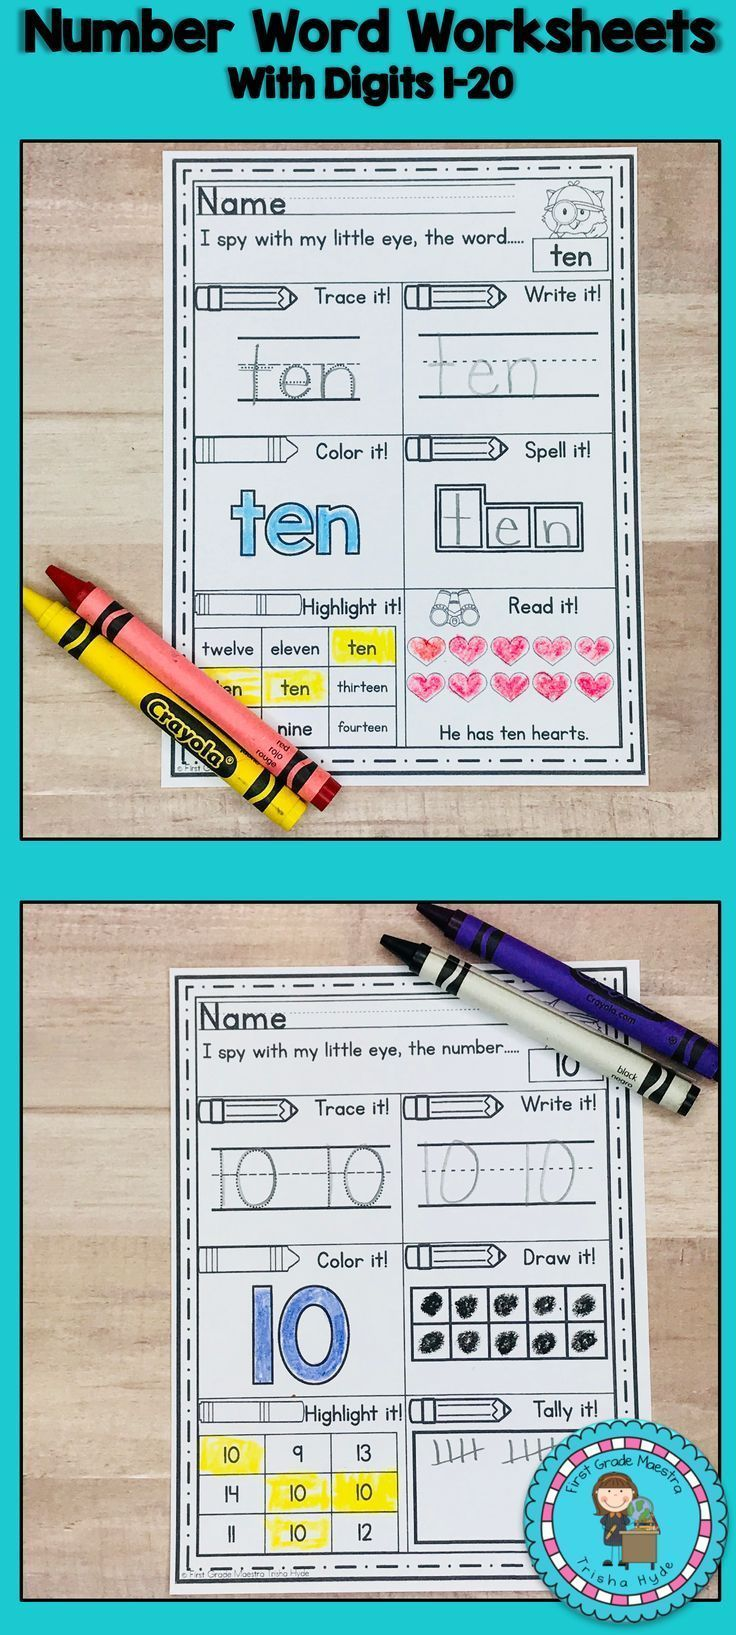 Number Words and Digits Worksheets | Number words, Printable ...